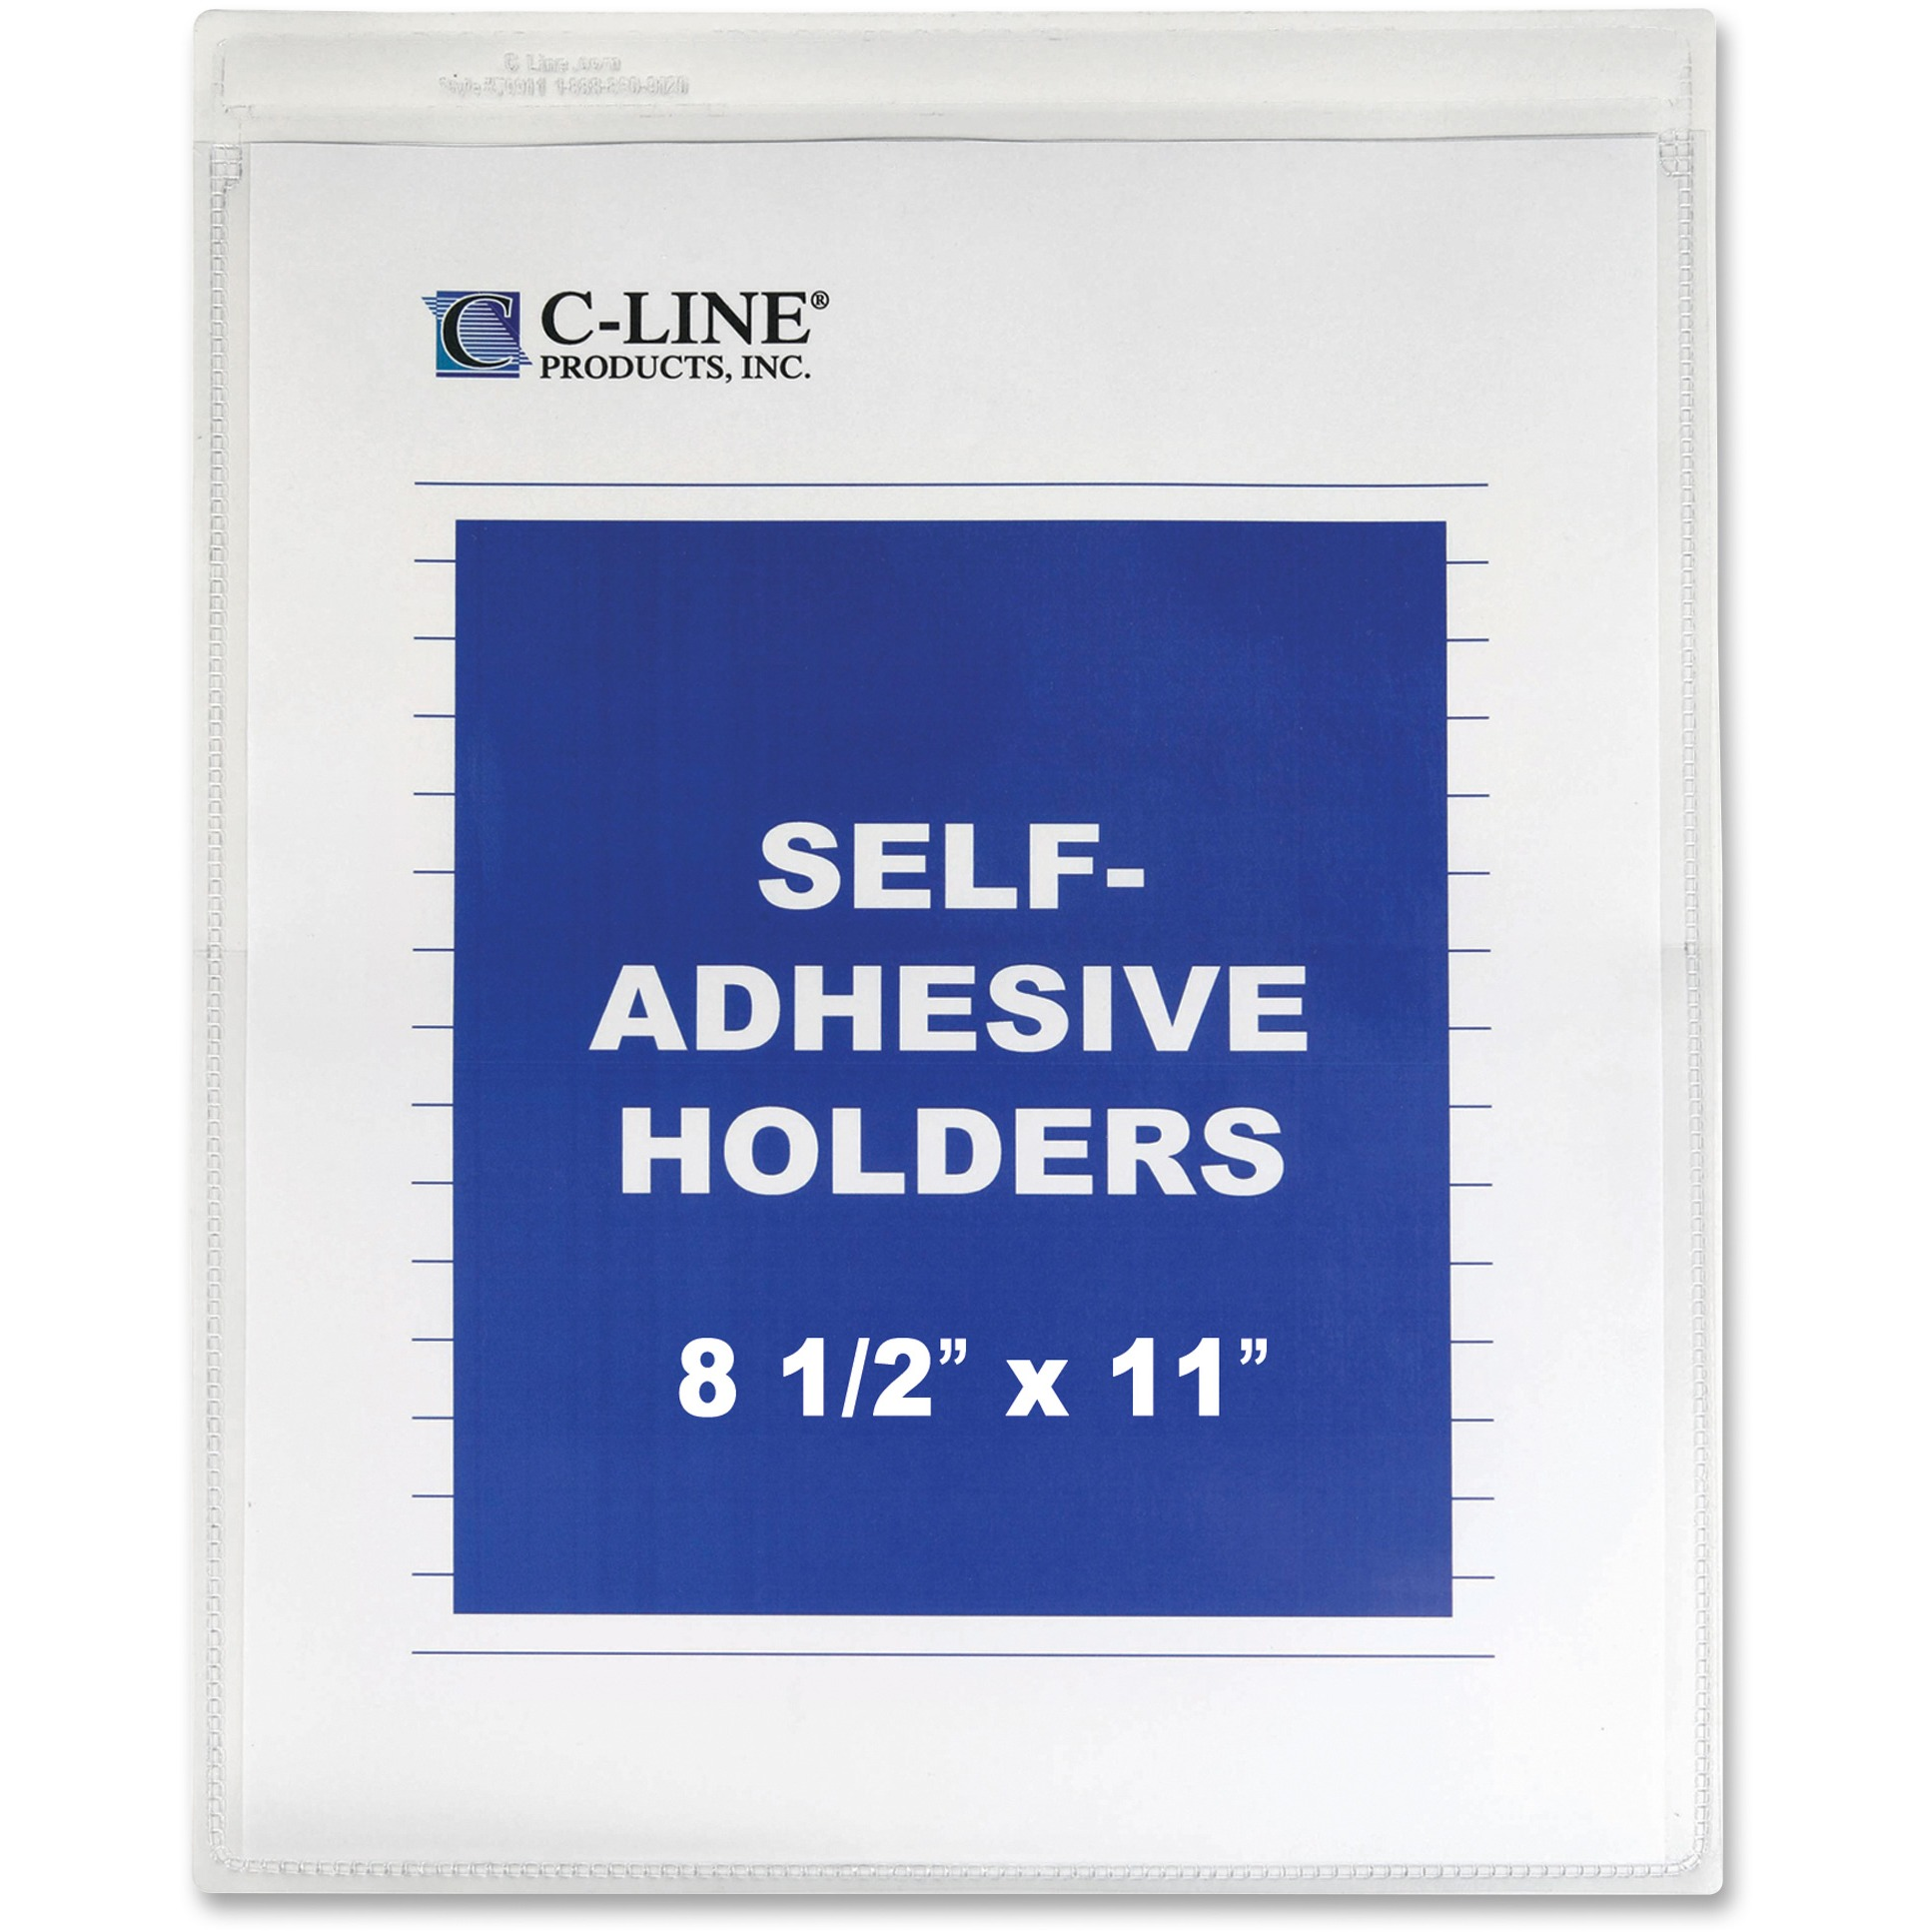 "C-Line Self-Adhesive Shop Ticket Holders, Heavy, 15"", 8 1/2 x 11, 50/BX"